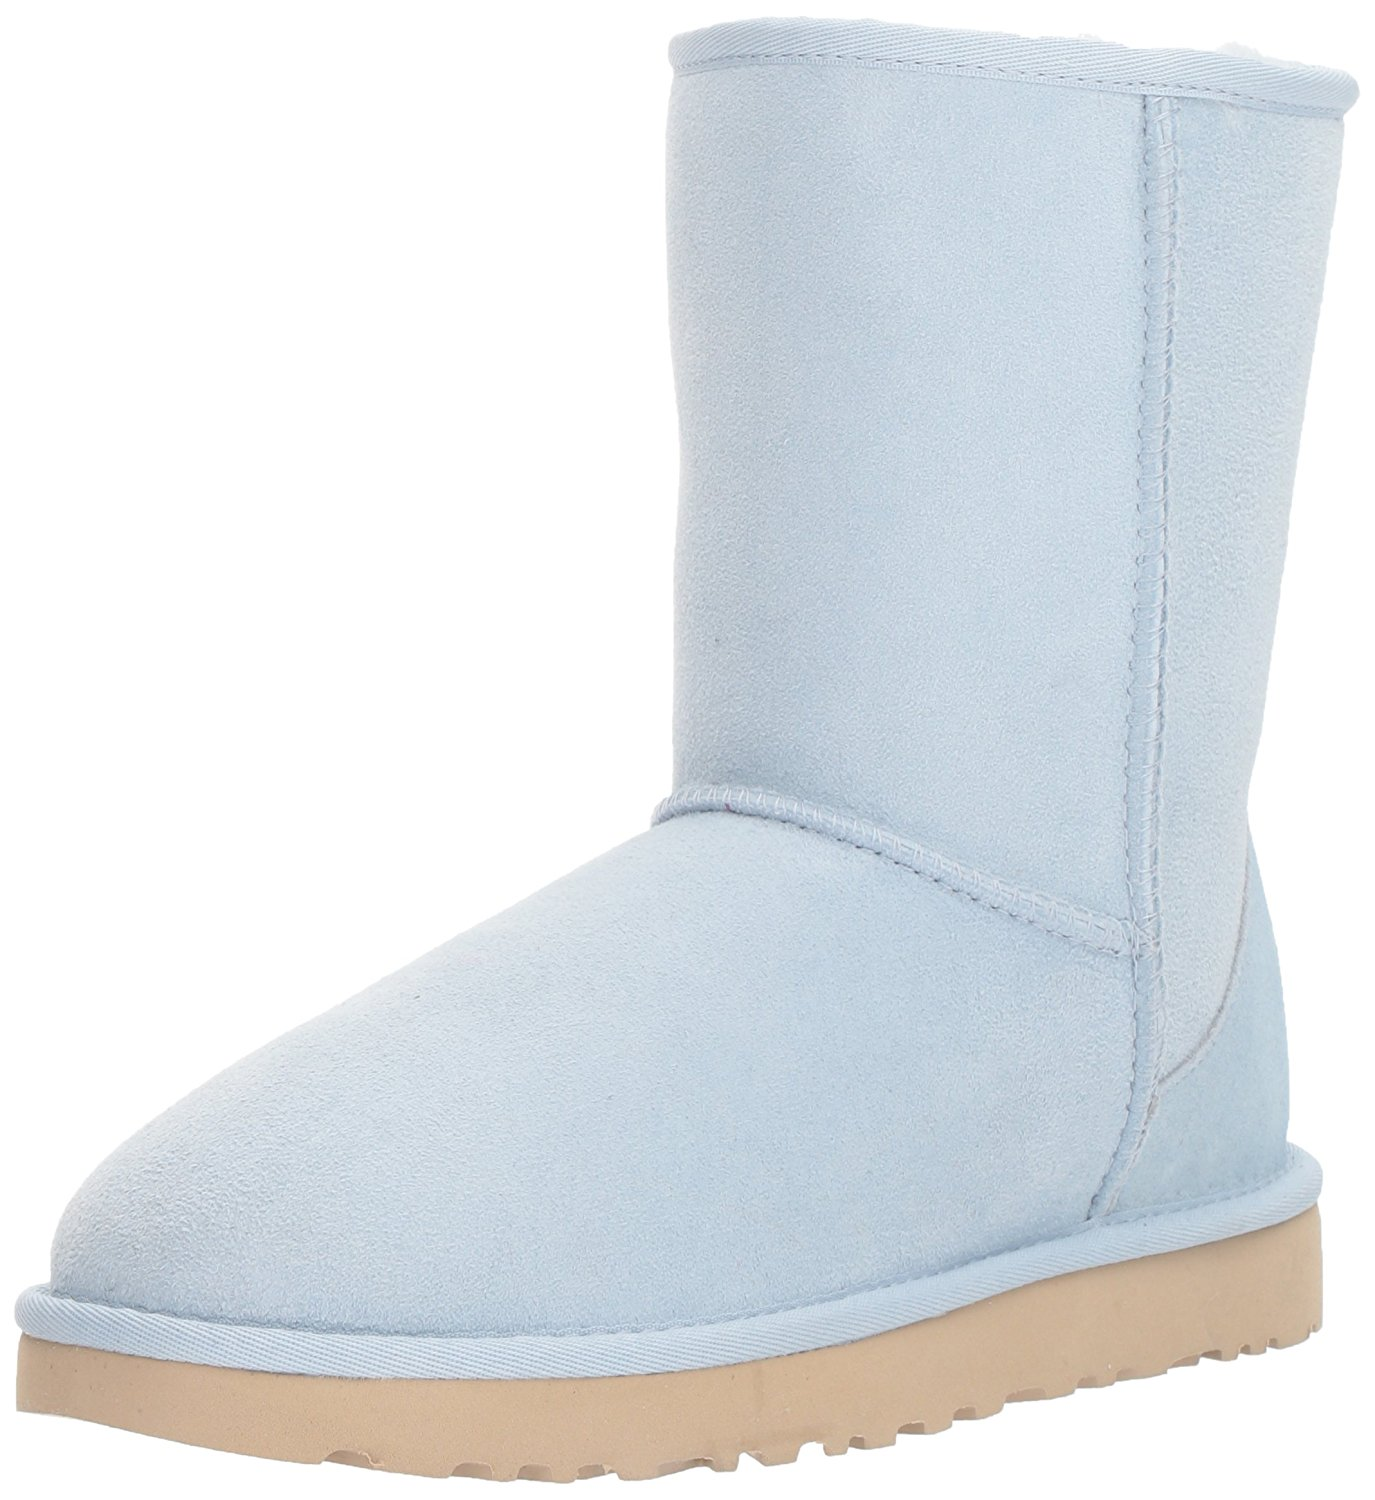 UGG Australia Mens Mens Classic Short Closed Toe Mid-Calf Cold Weather Boots